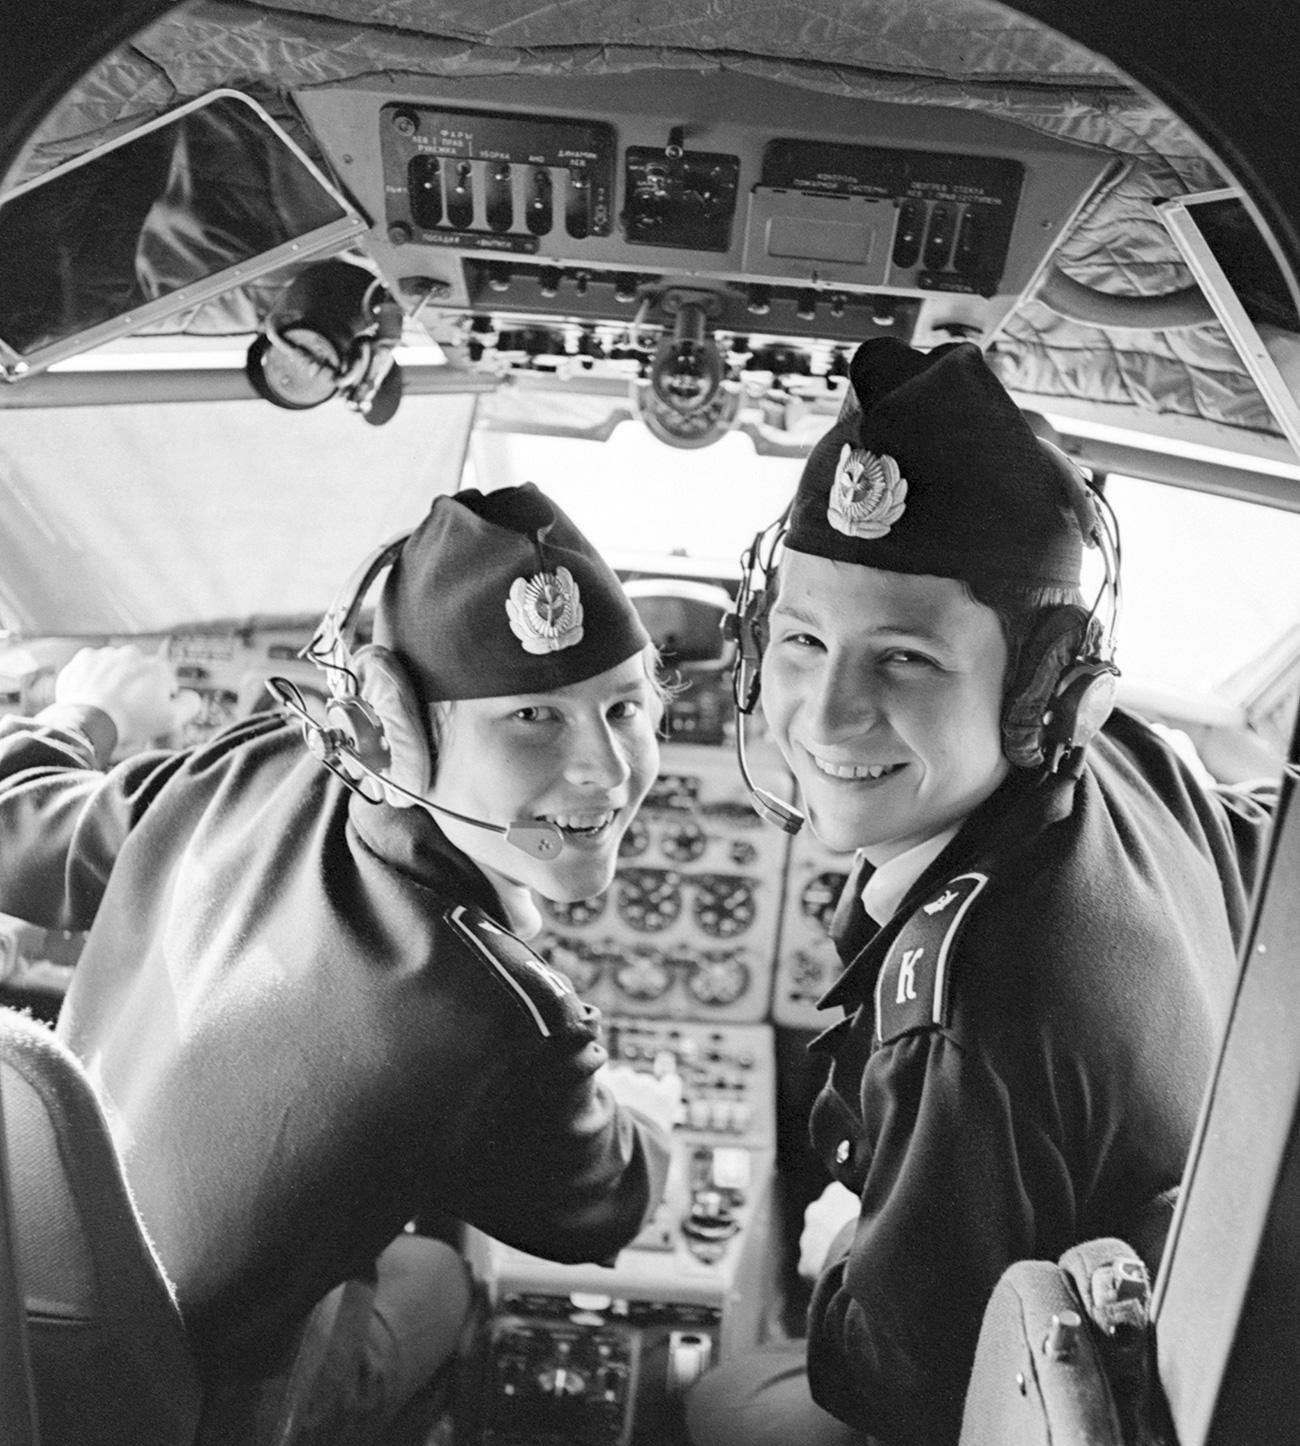 Young pilot school students Valery Terpugov and Sergey Suchkov pictured in the YAK-40 aircraft cabin, 1977. Source: TASS